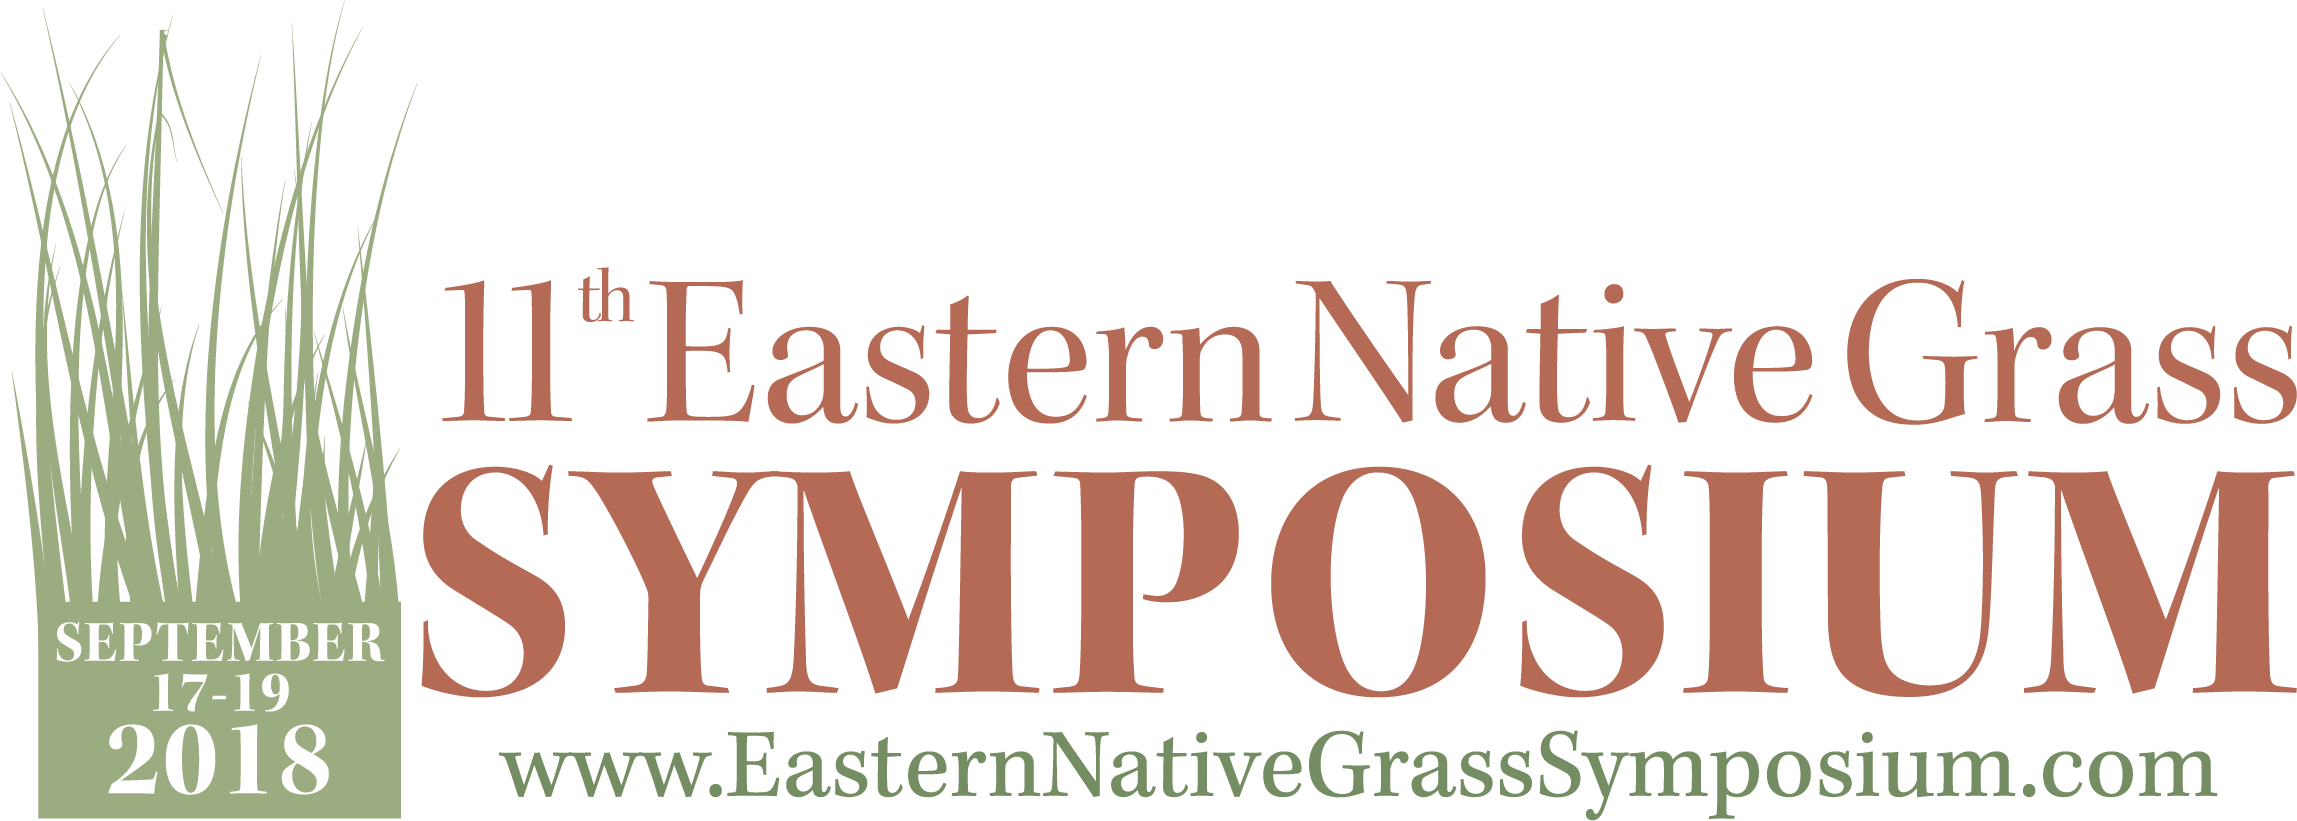 Eastern Native Grass Symposium